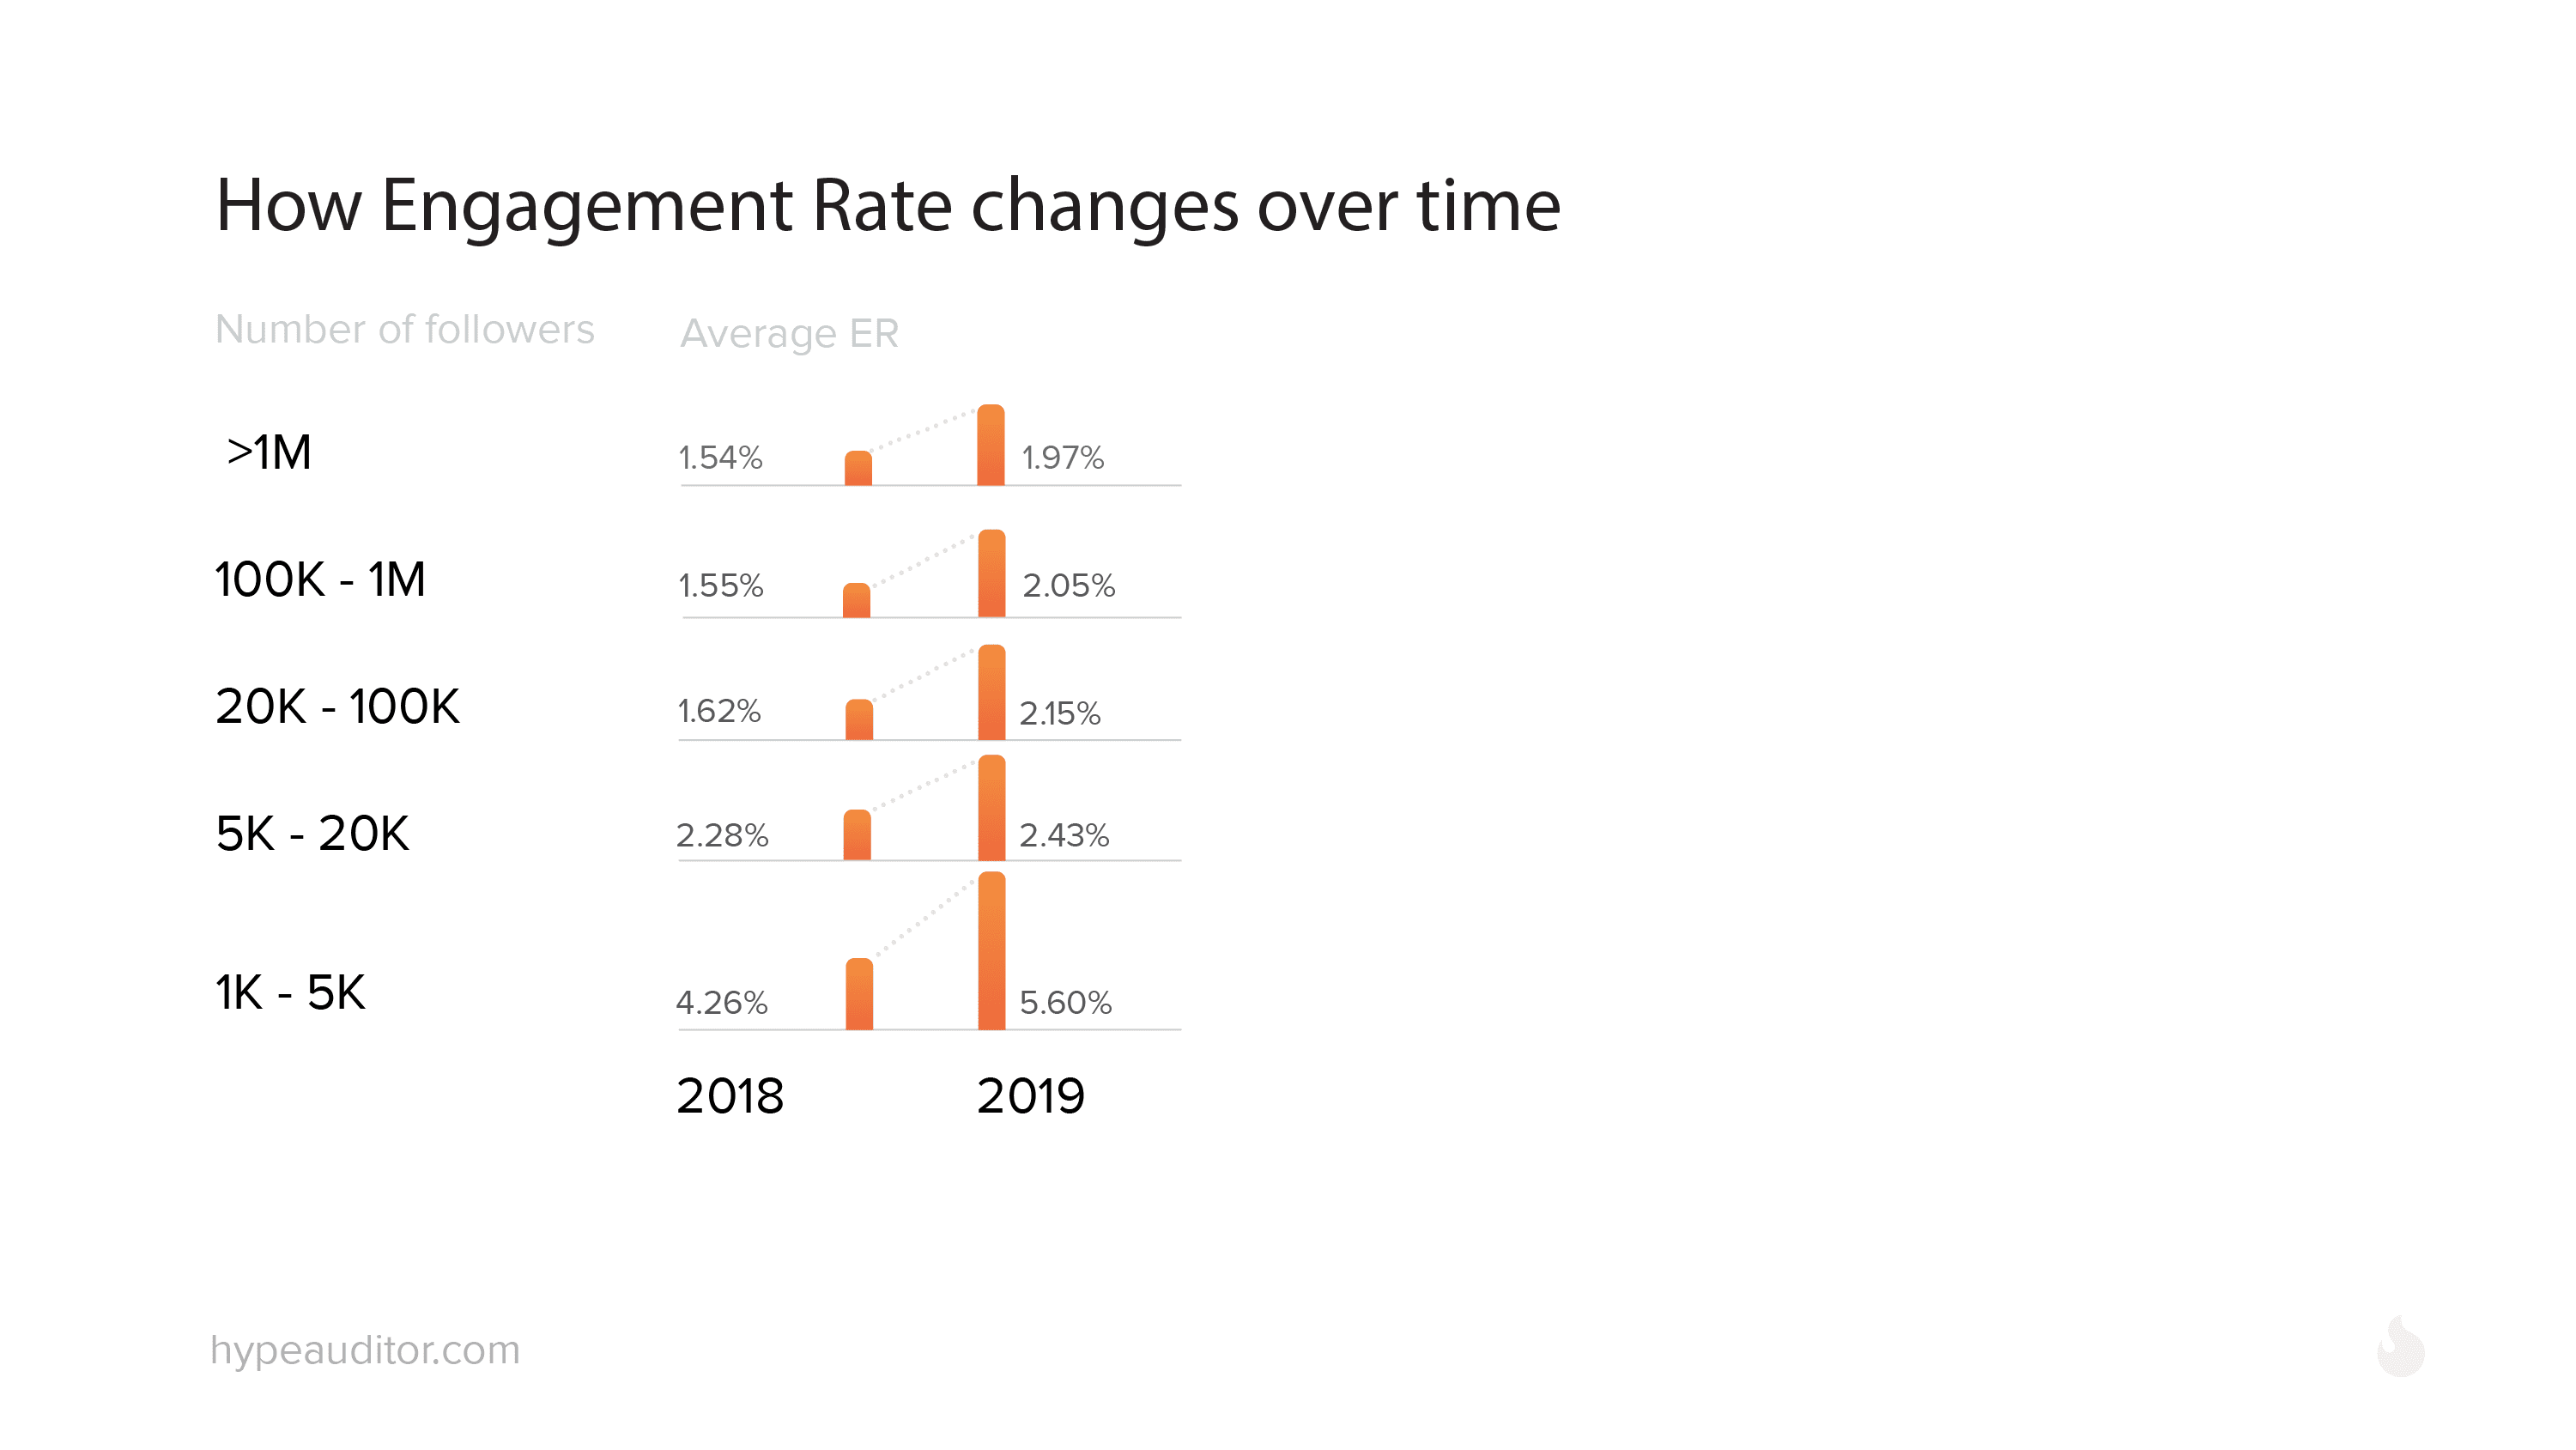 Instagram Engagement Rate in 2018 vs 2019